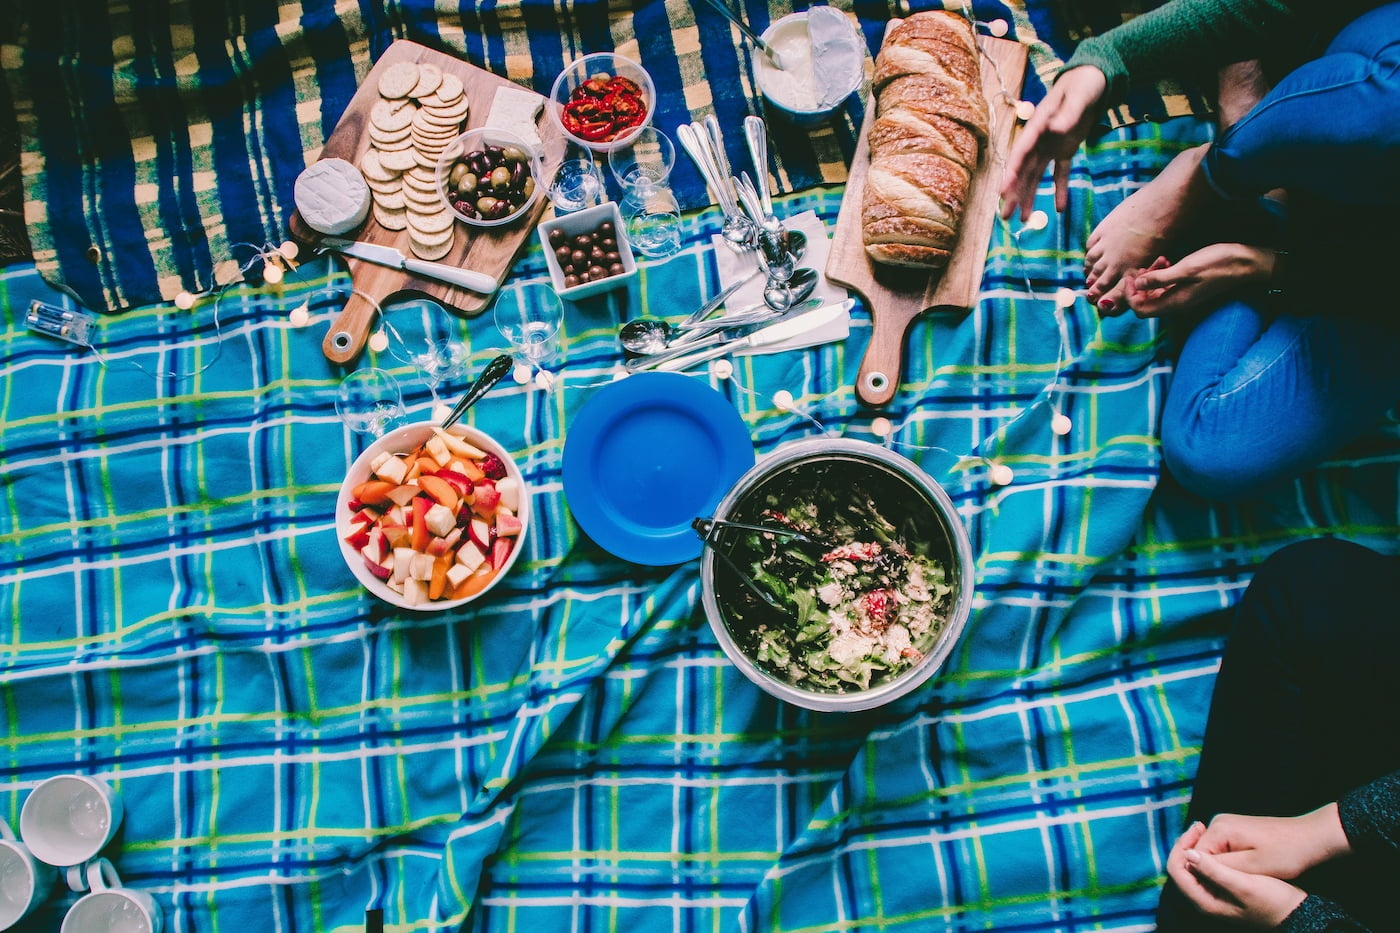 Charcuterie picnic on blankets outdoors.